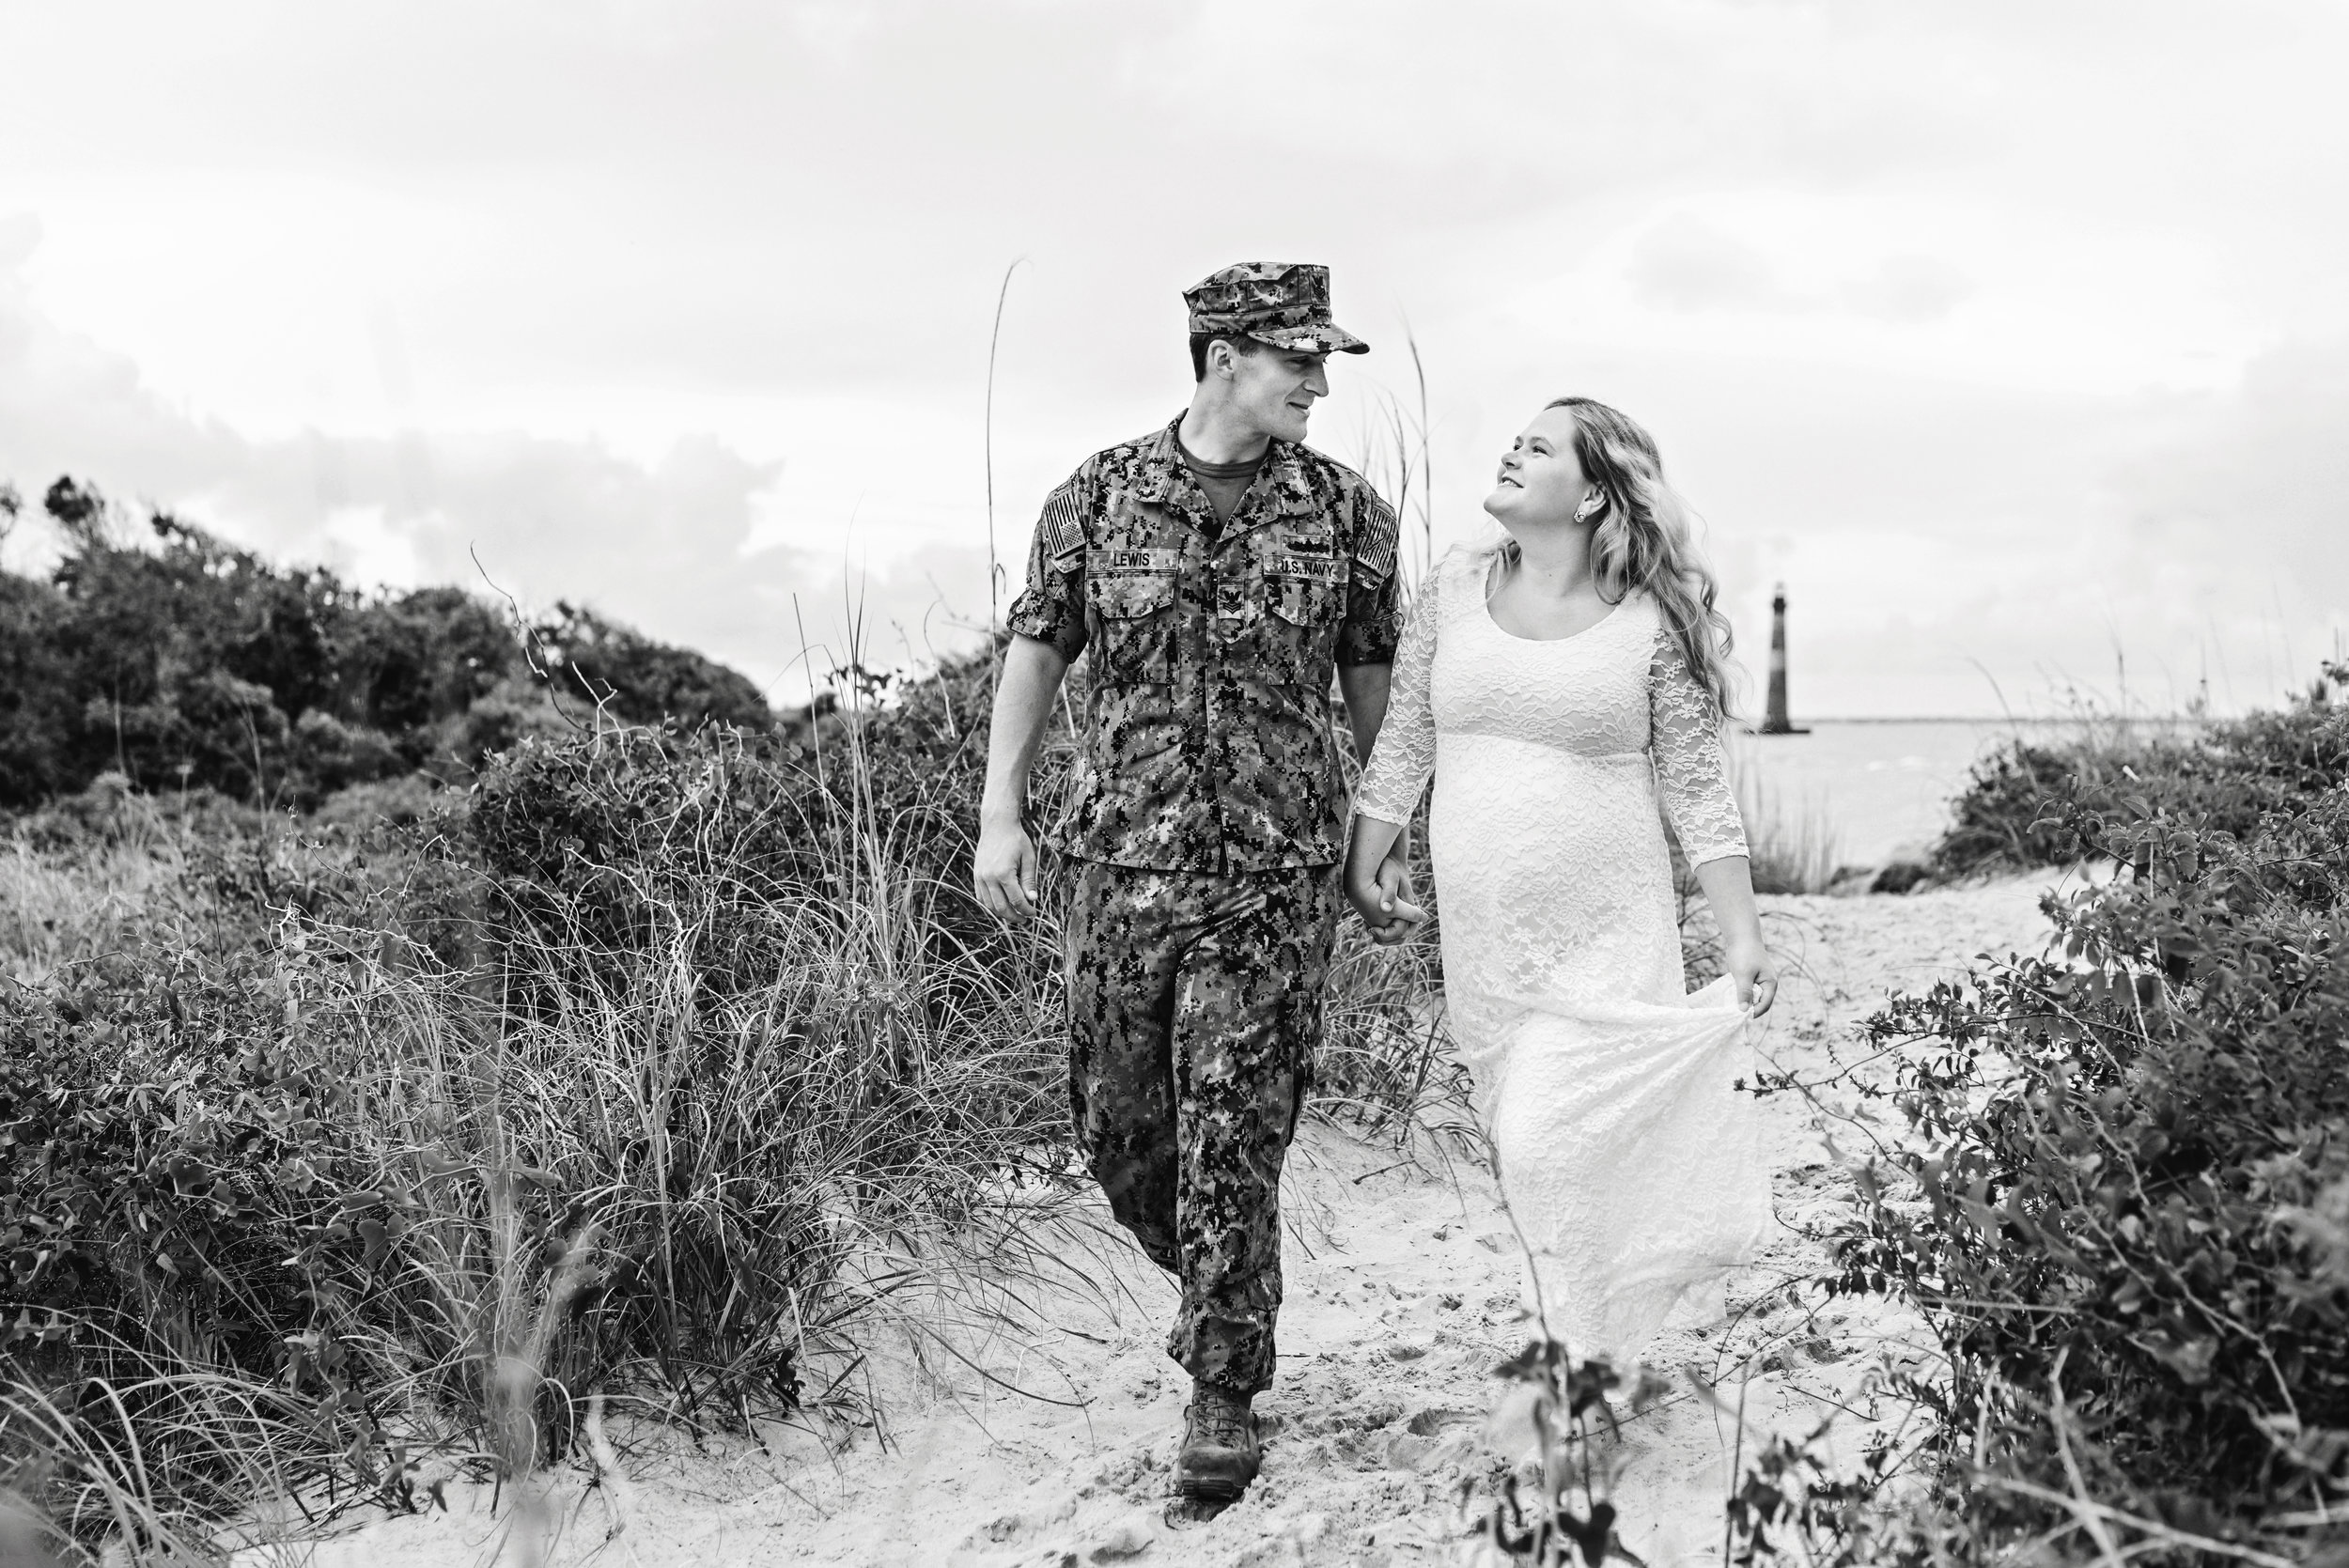 Folly-Beach-Maternity-Photographer-Following-Seas-Photography-6488BW copy.jpg